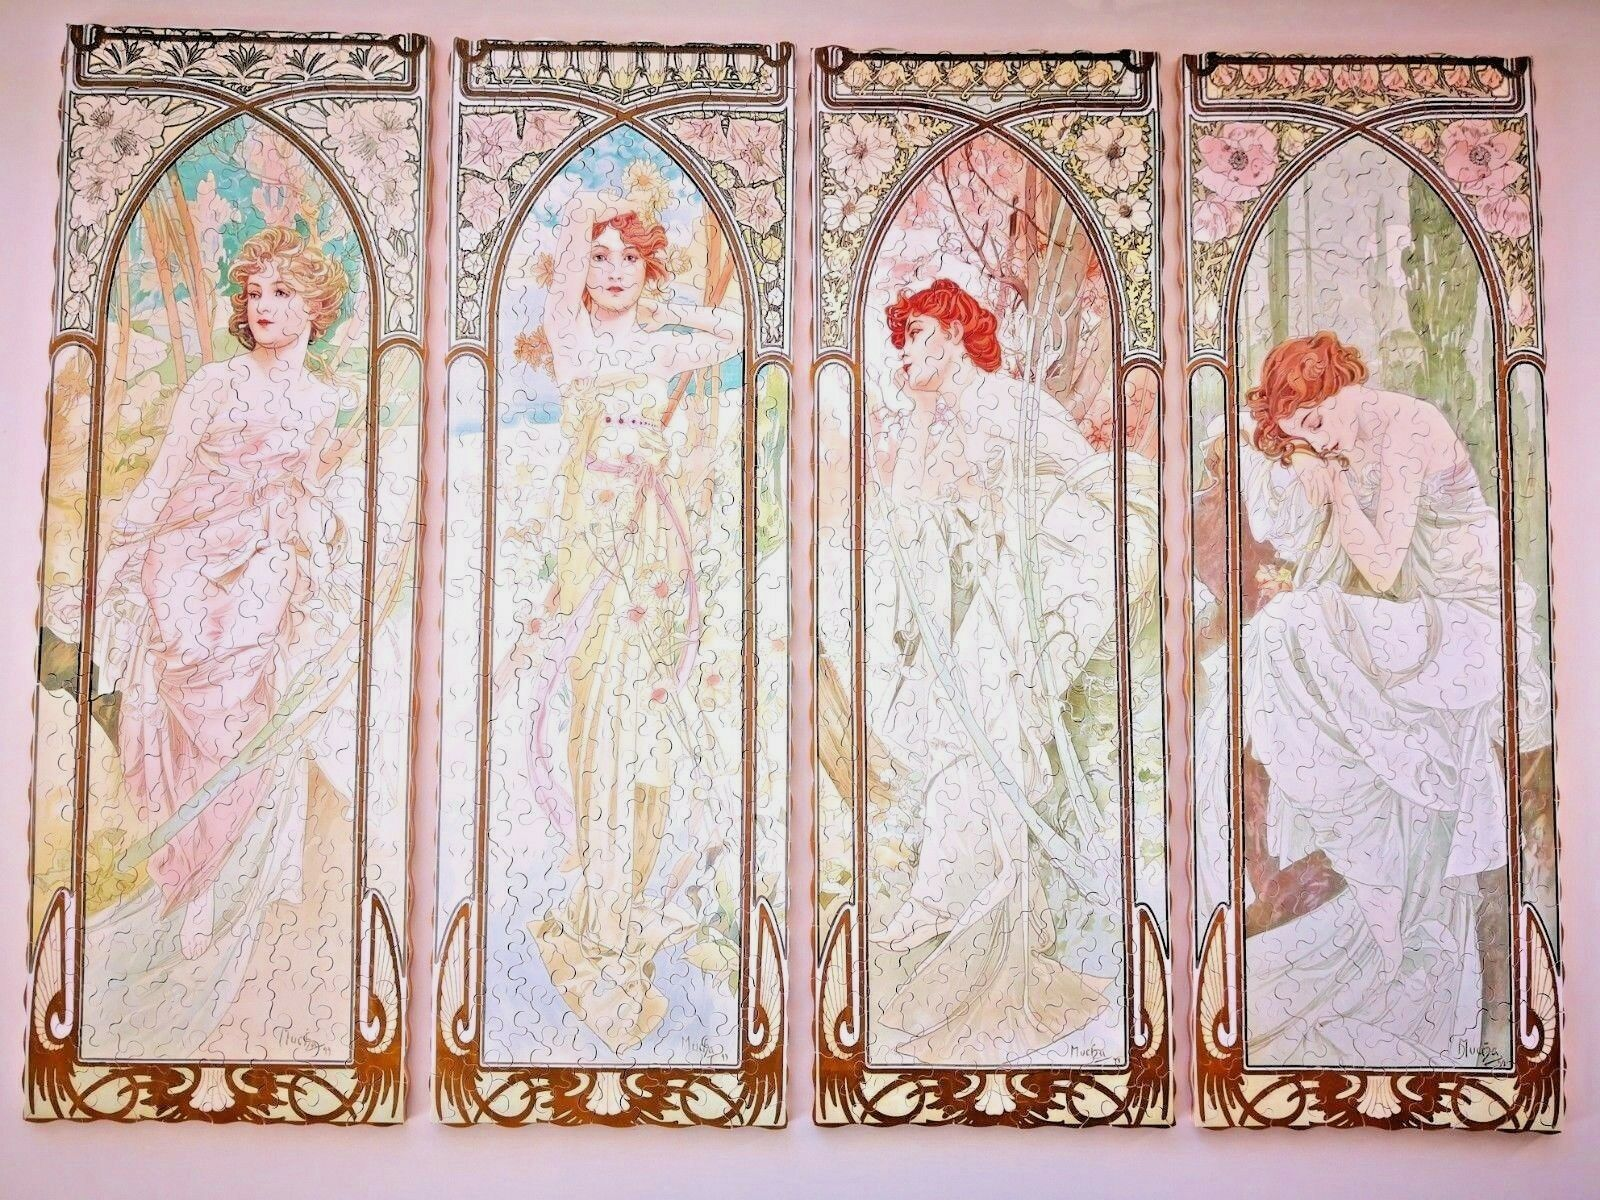 Nuovo Hand Cut Wooden Jigsaw Puzzle TIMES OF THE DAY by Alphonse Mucha 750-800 pcs